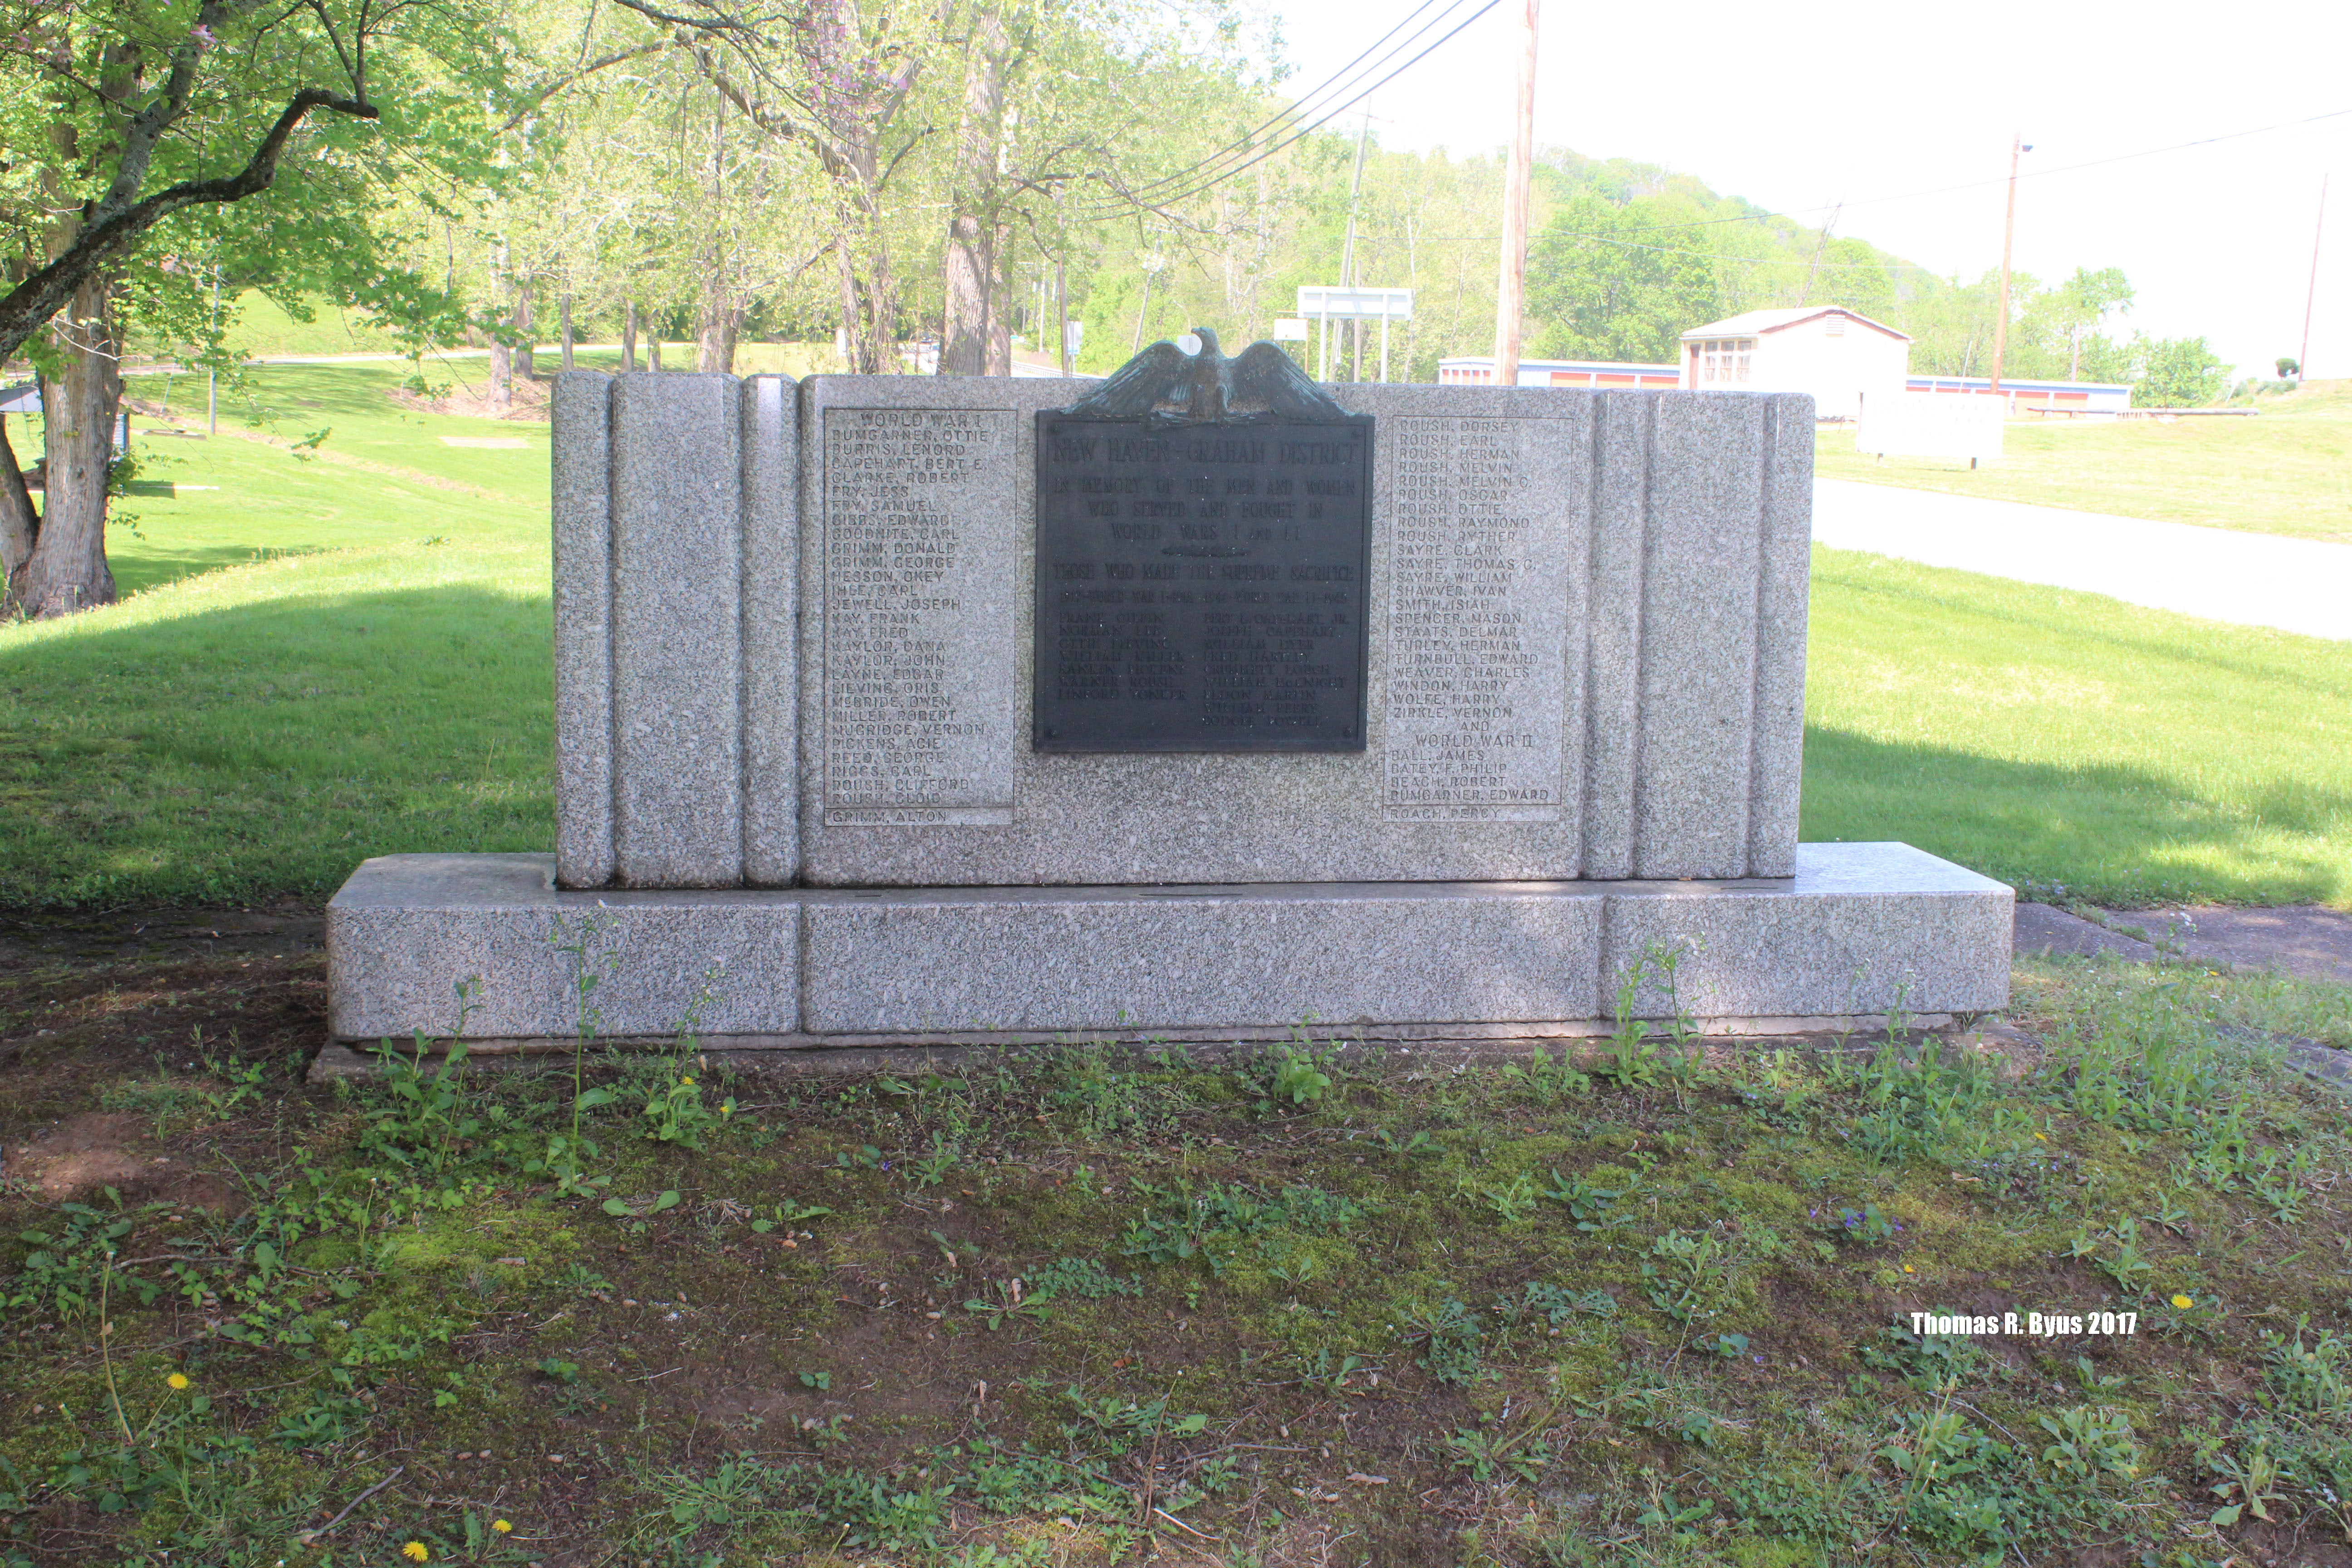 View of the front of the monument. Dedication plaque doesn't have a date, however newspaper records indicate it was placed in 1947.